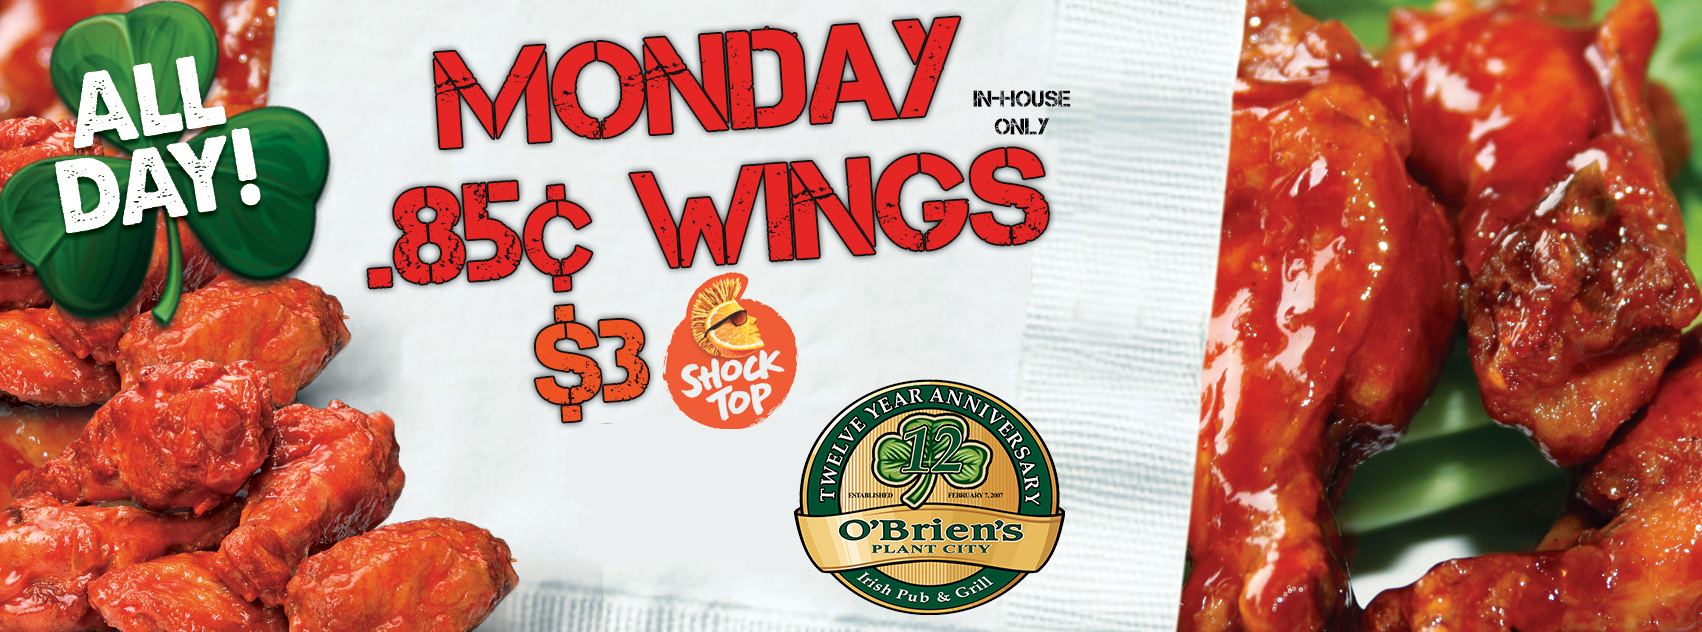 Plant-City-Tuesday-Specials-Wings-and-Shock-Top